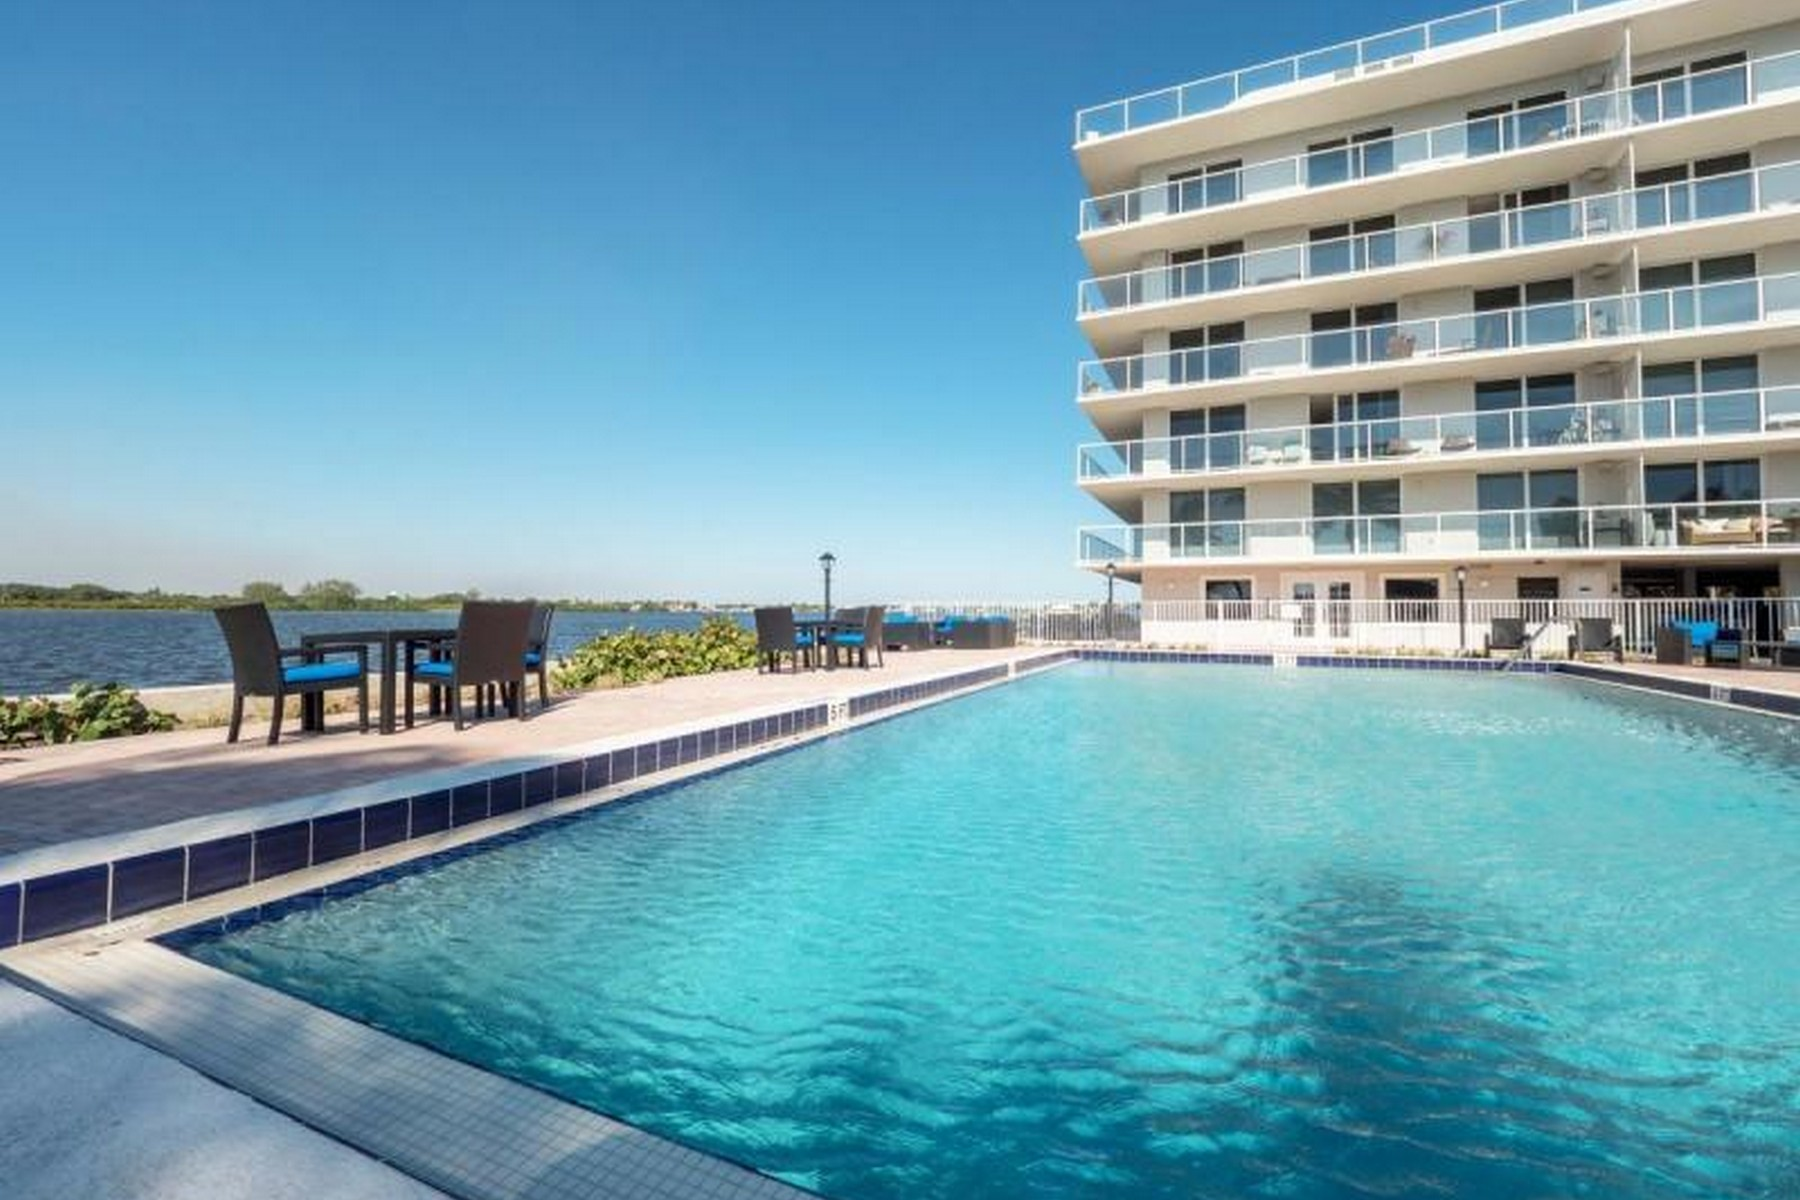 Additional photo for property listing at Rare Turnkey Rental with Amenities Galore! 2560 S Ocean Boulevard Unit 612 Palm Beach, Florida 33480 United States